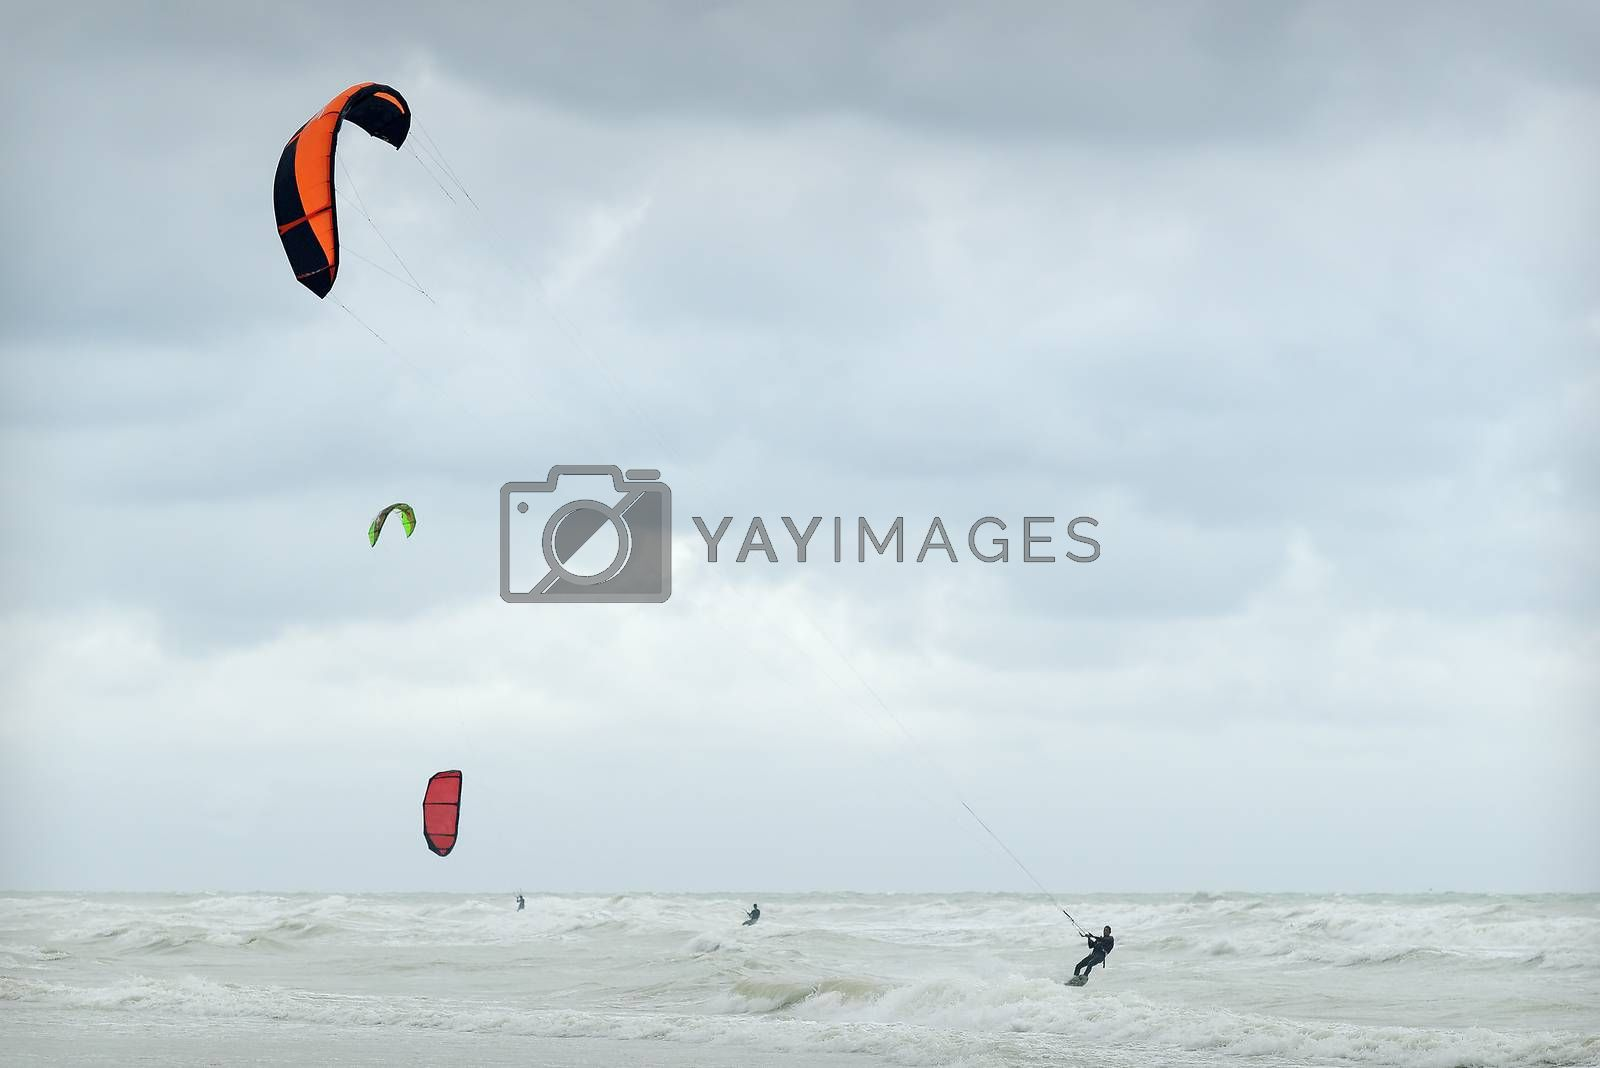 kitsurfing by stormy weather